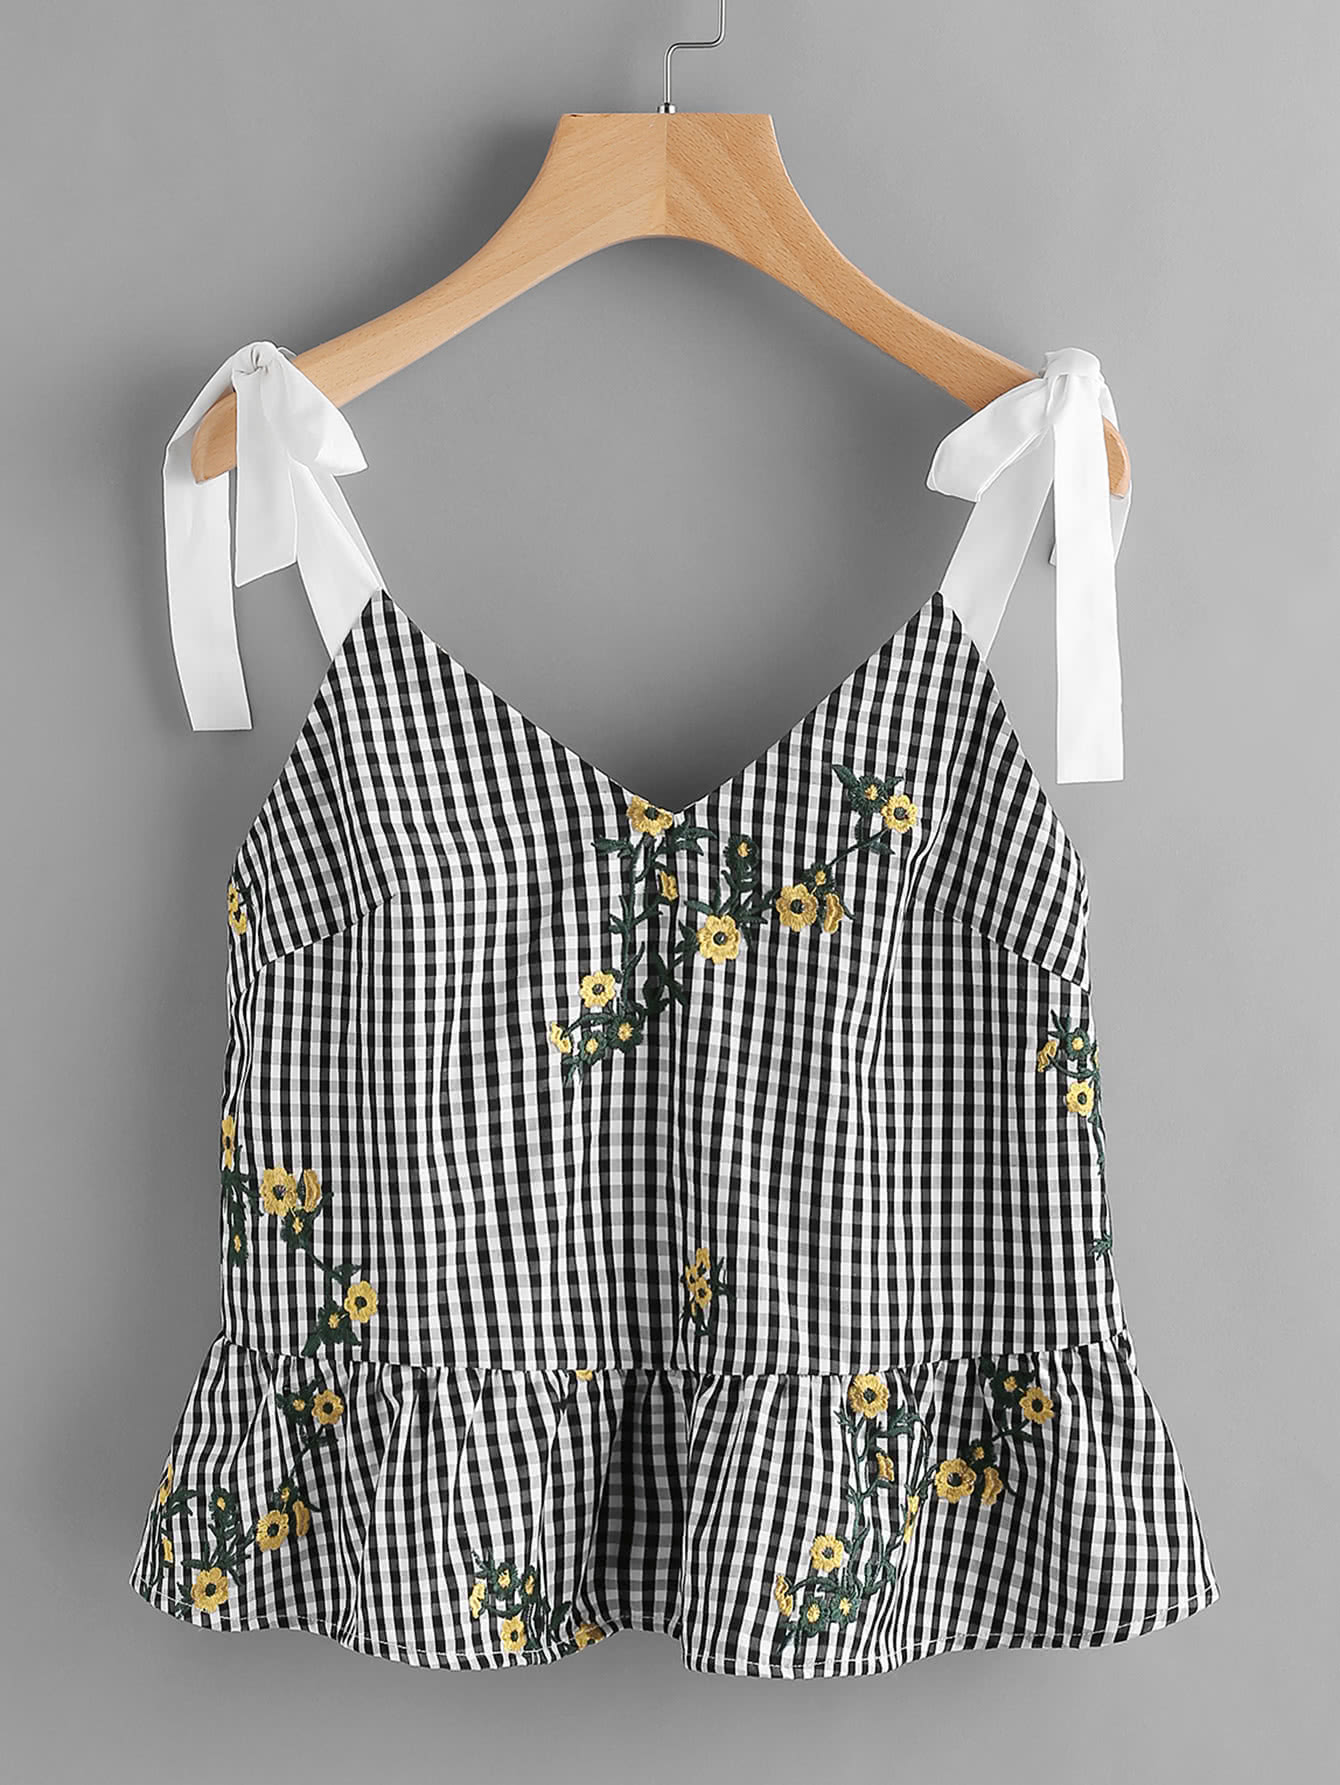 Sash Tie Shoulder Blossom Embroidered Ruffle Gingham Top gingham one shoulder top